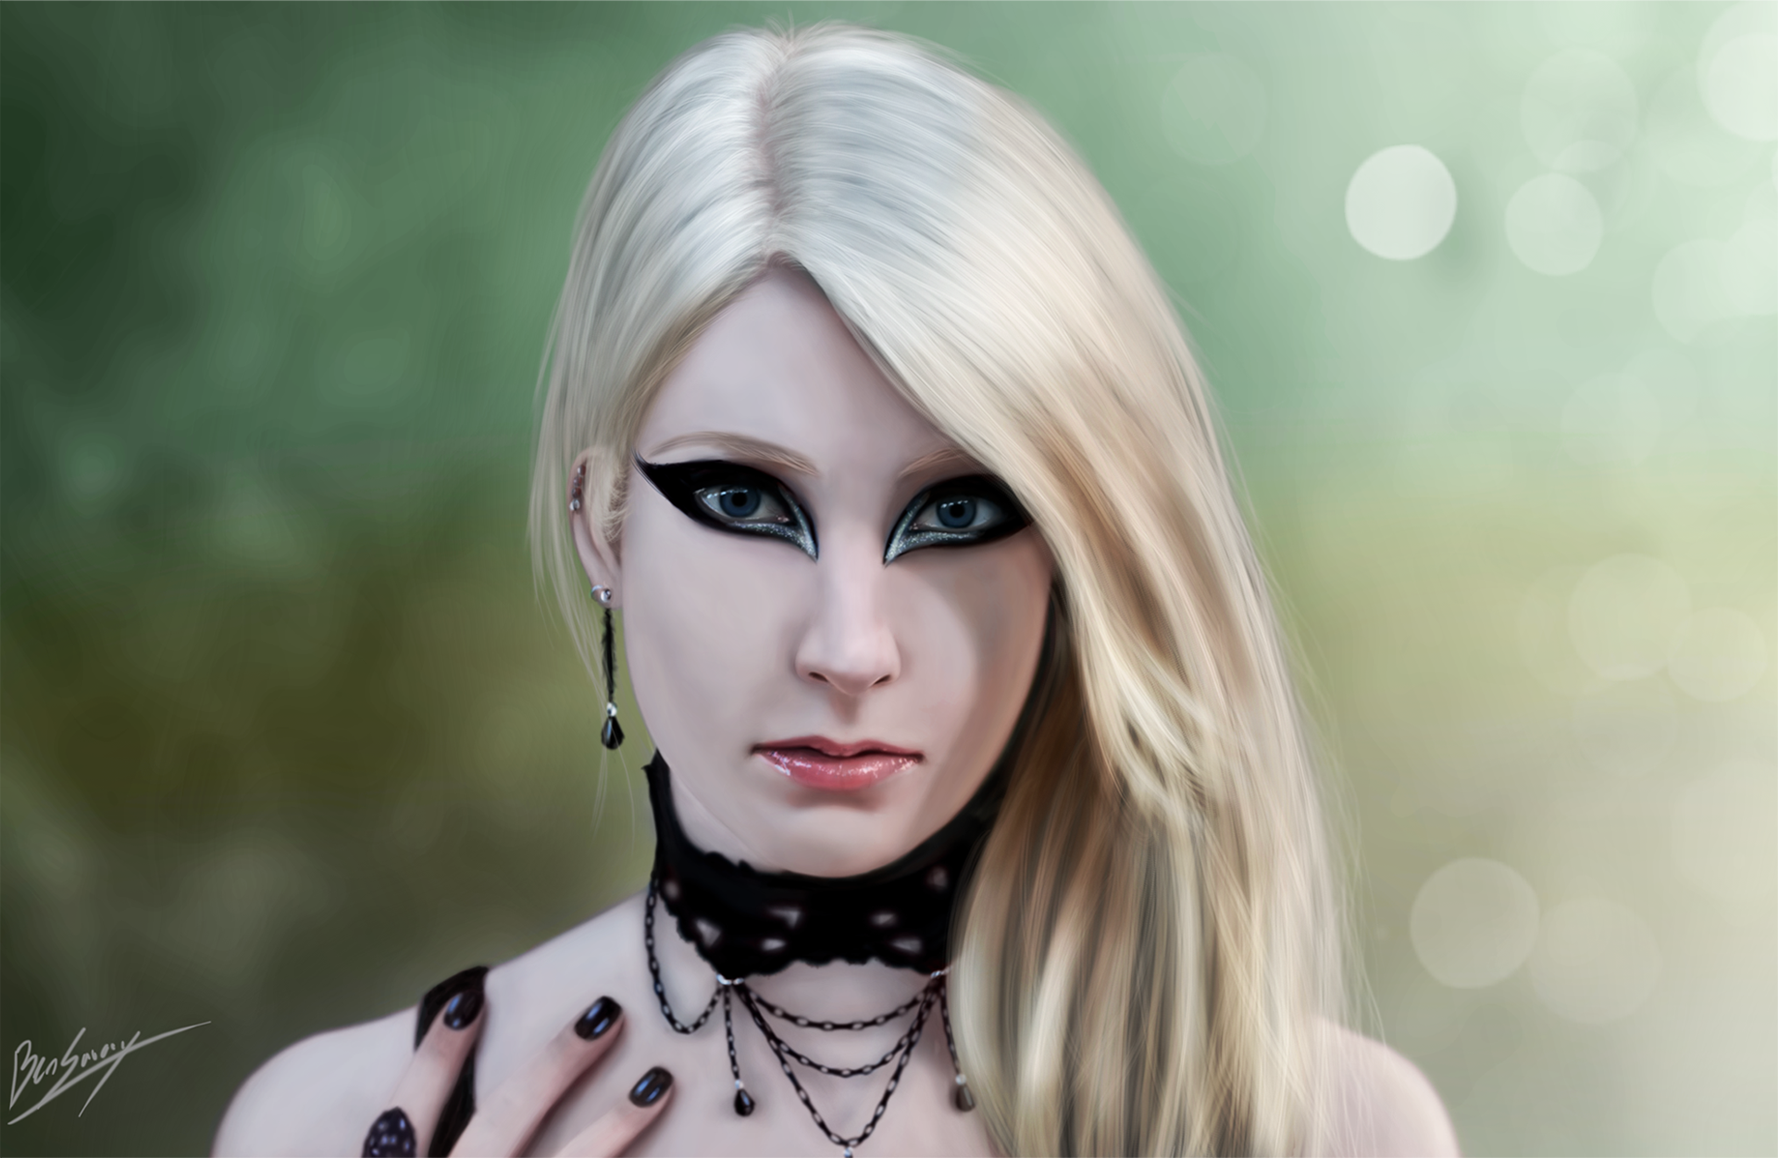 Girl Portrait by Dropdeadcoheed